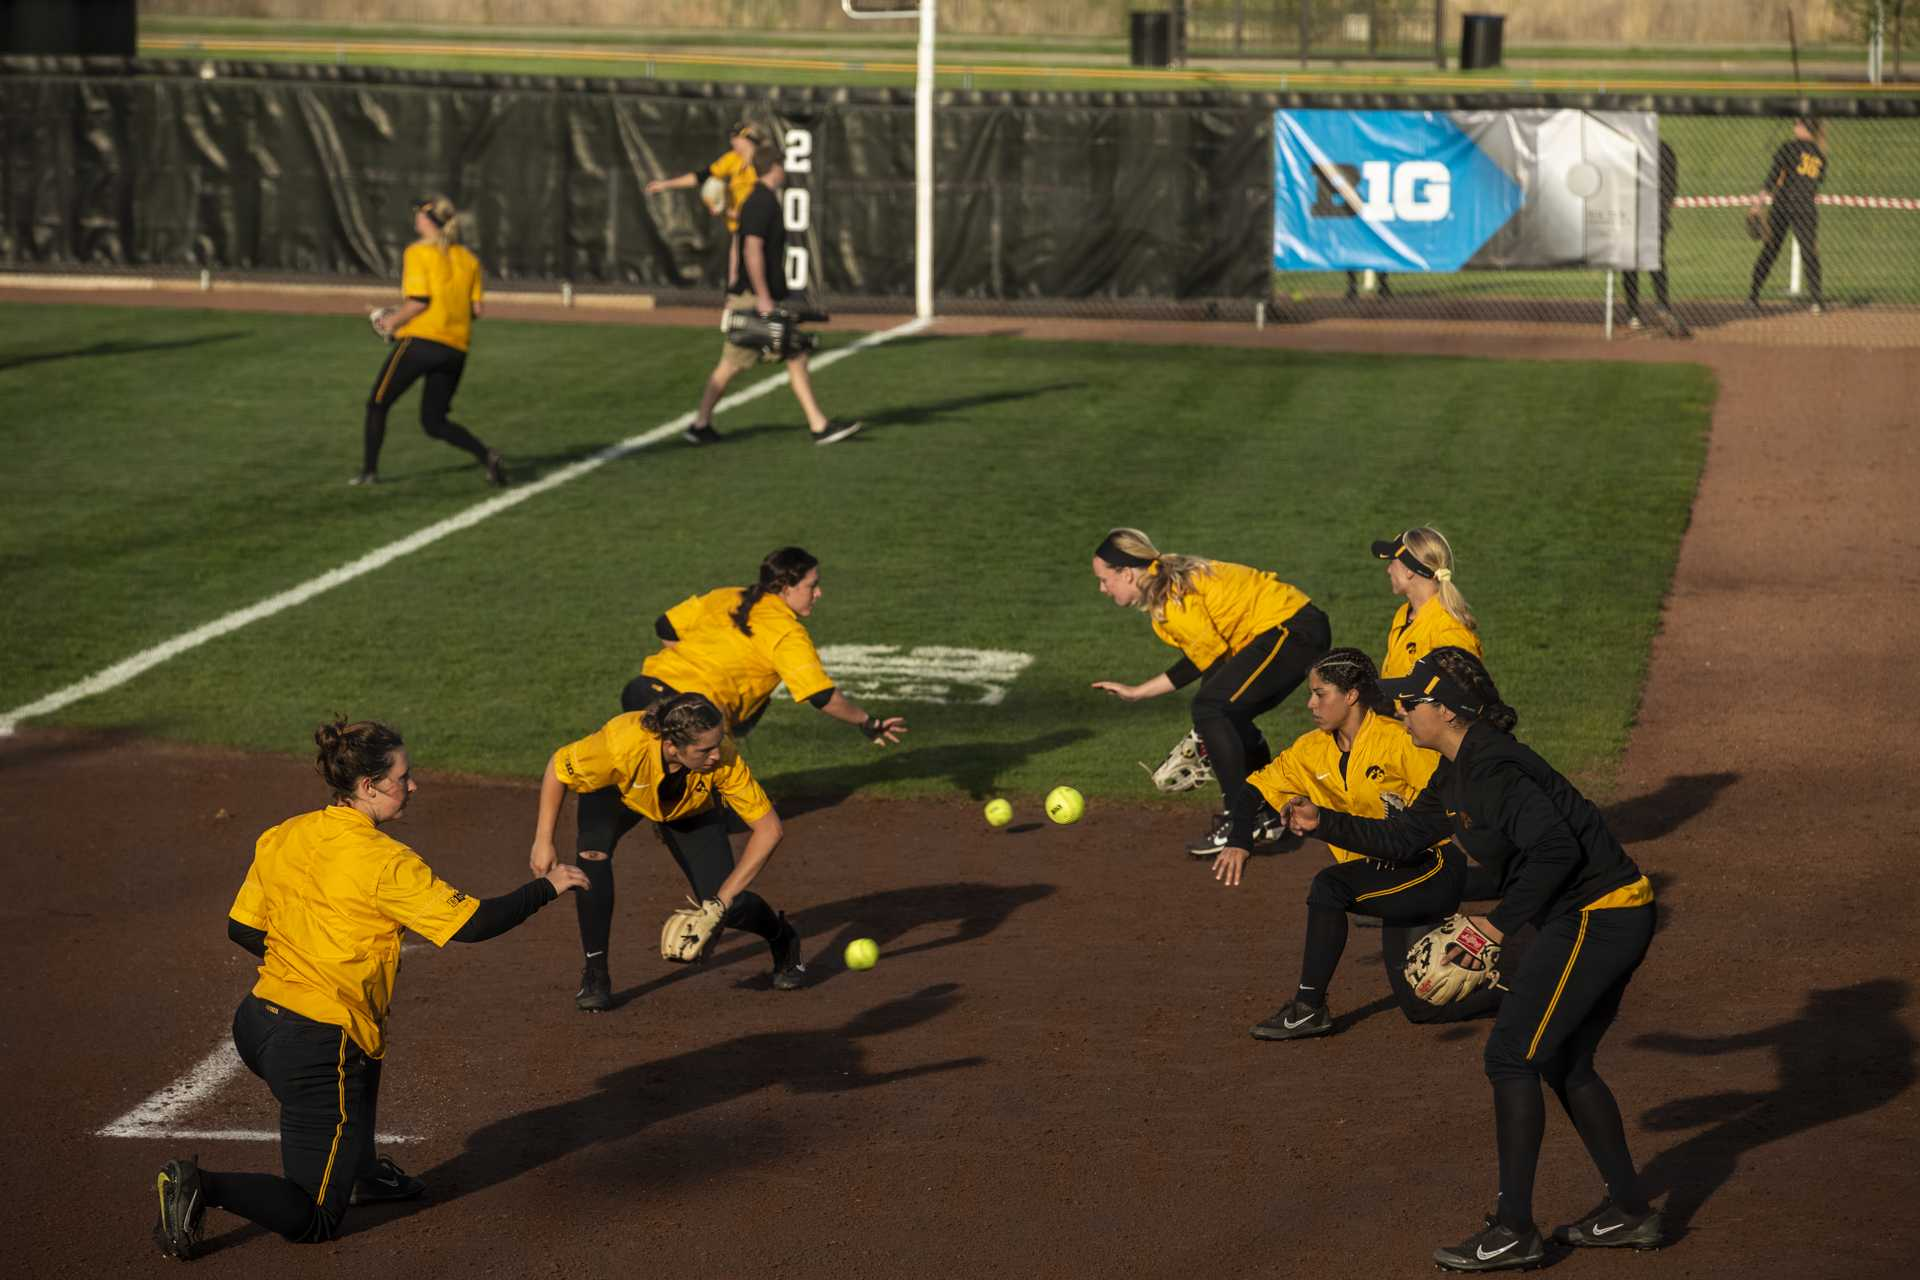 The Iowa softball team warms up before IowaÕs Big Ten tournament game against Ohio State at the Goodman Softball complex in Madison, WI. The Hawkeyes defeated the Buckeyes 5-1. (Nick Rohlman/The Daily Iowan)